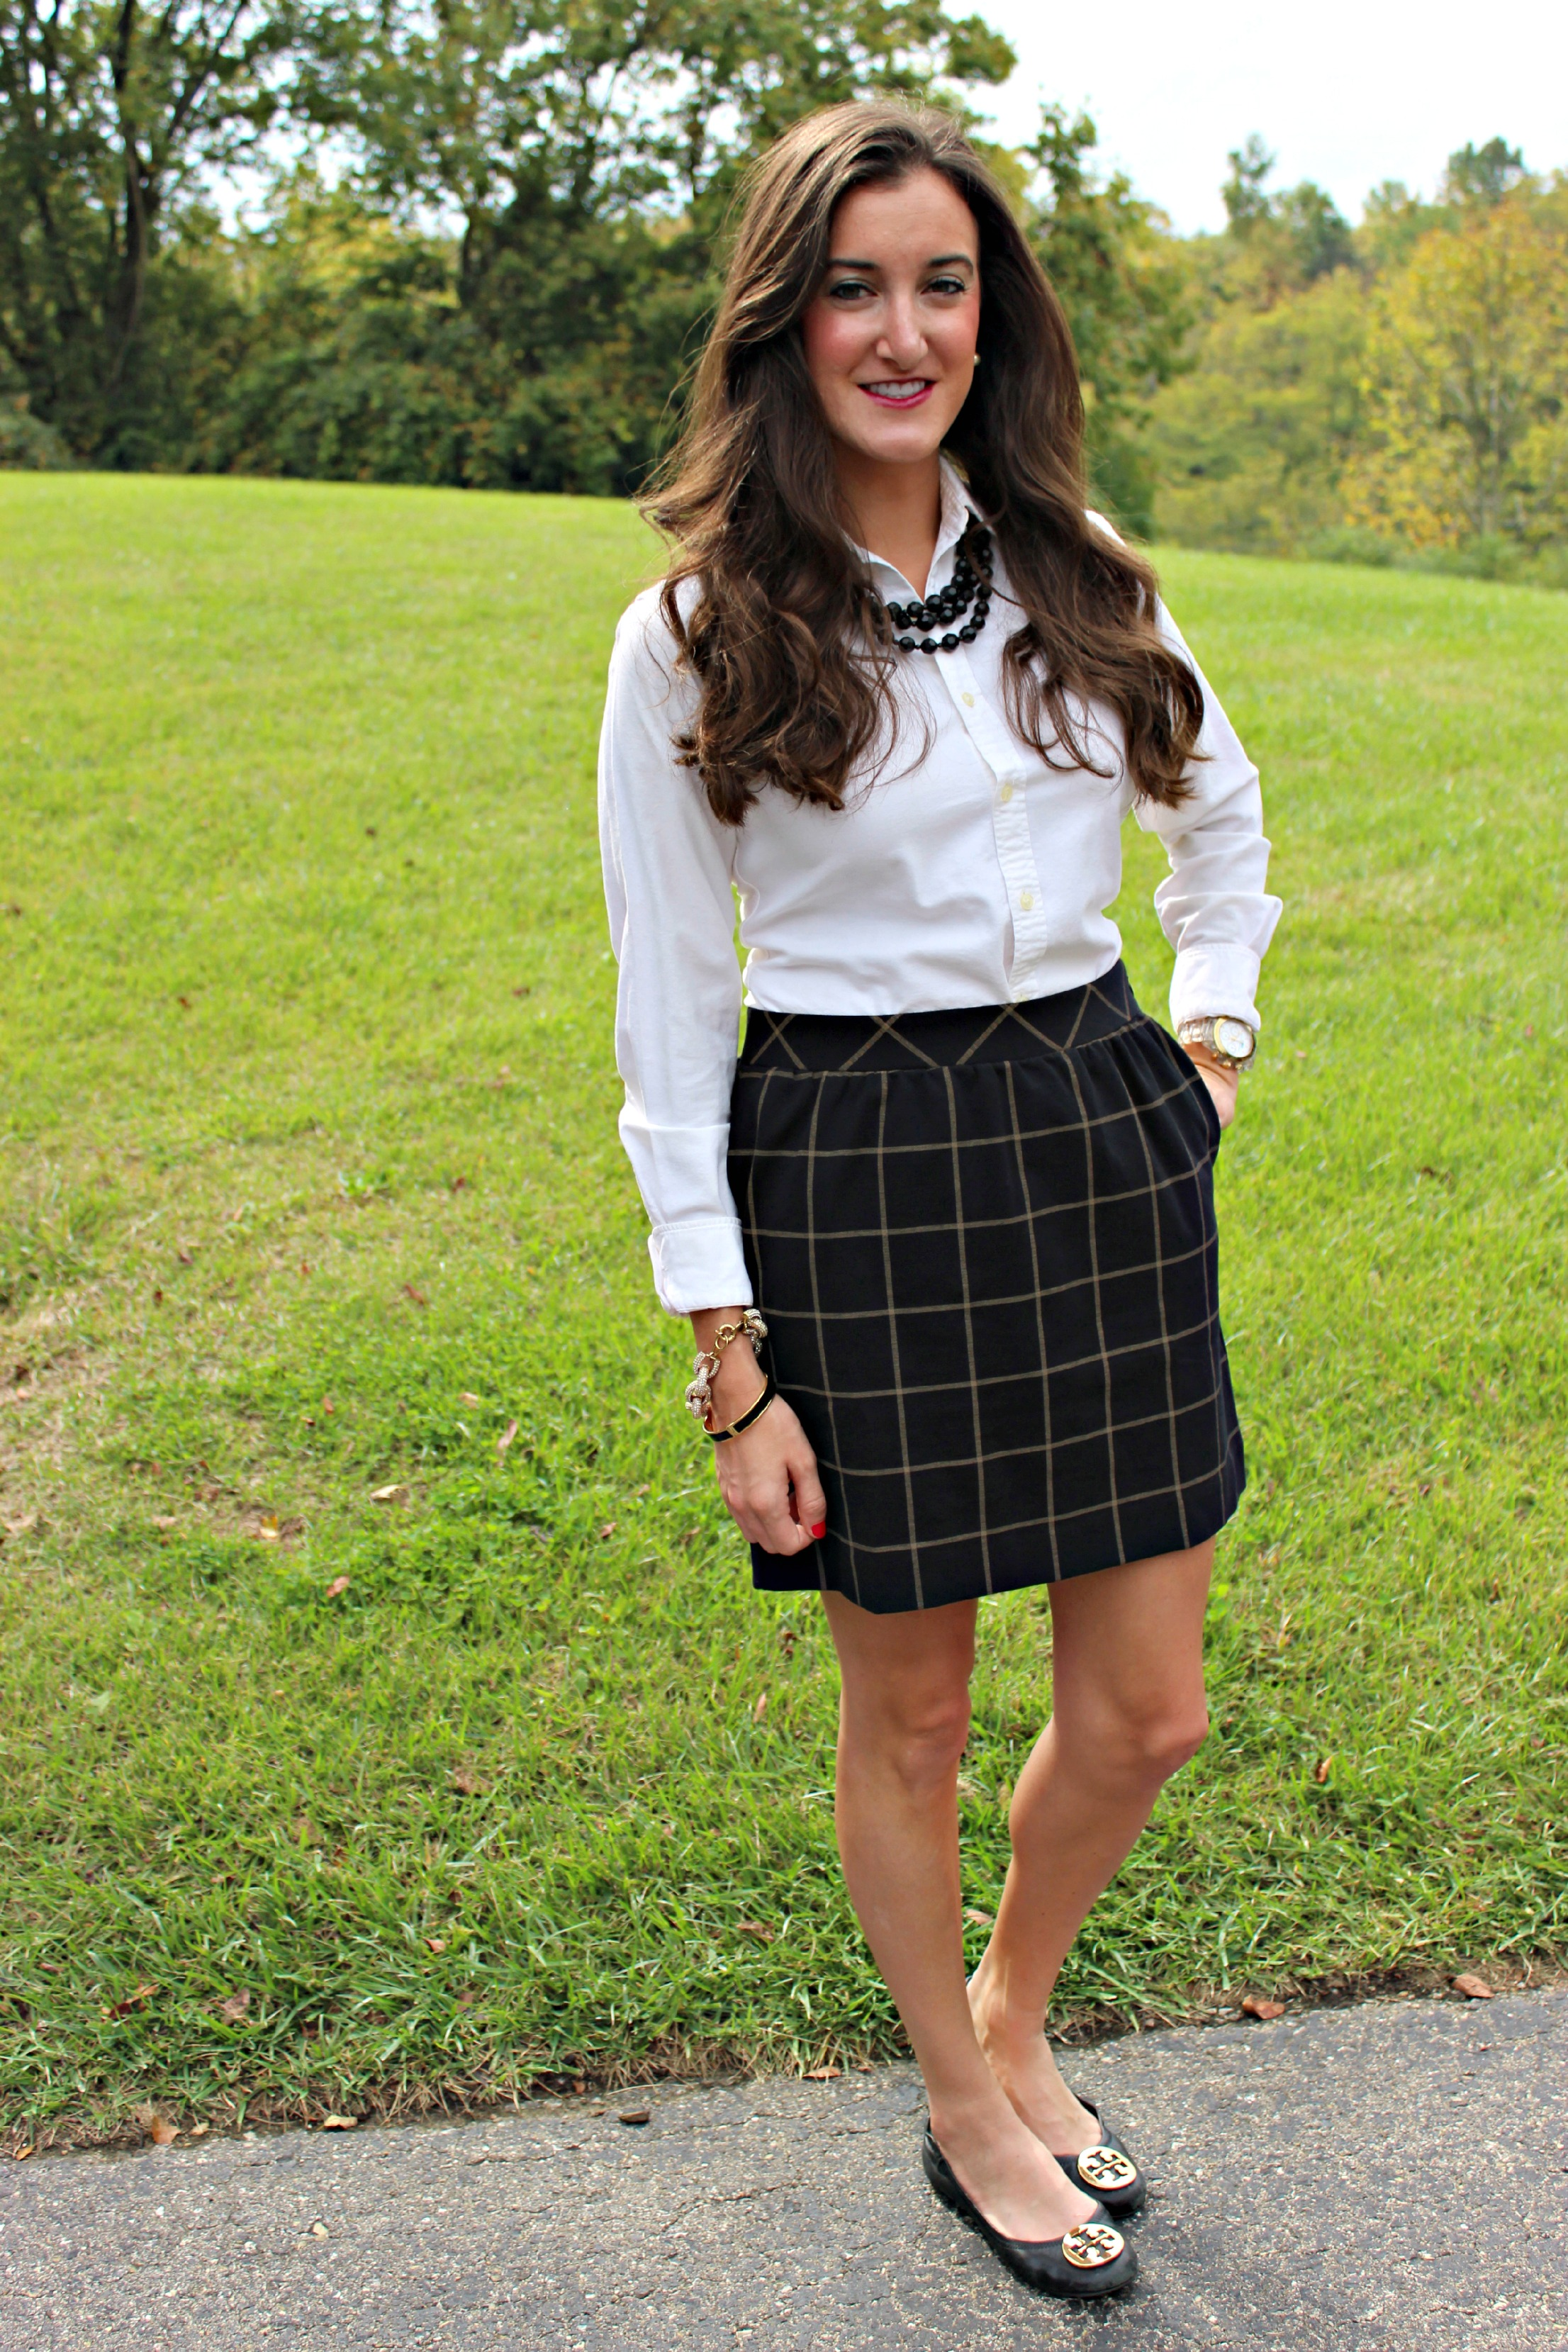 Classy School Girl Outfit